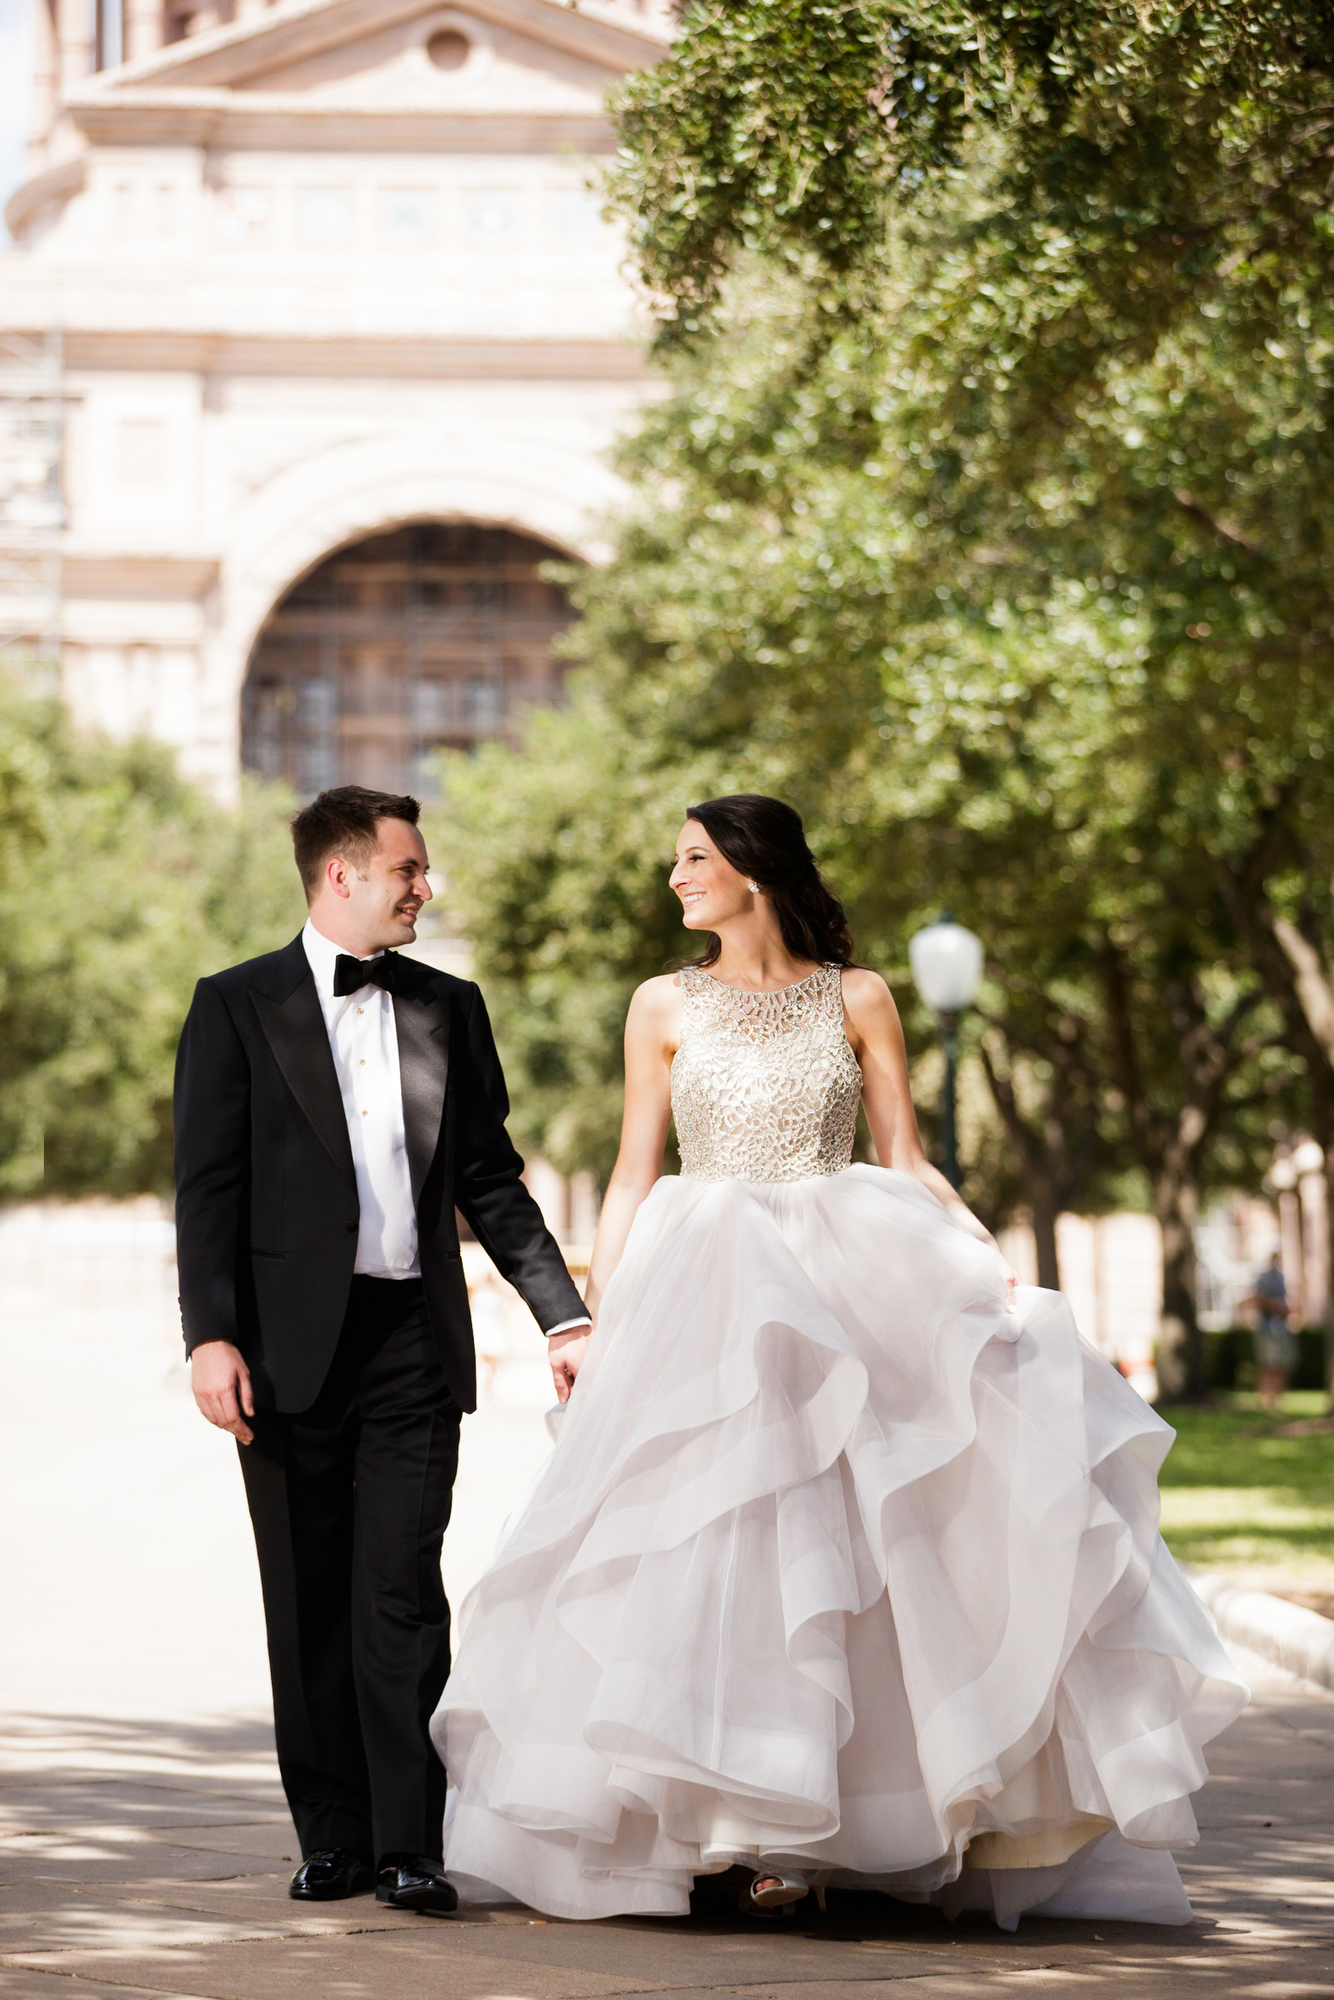 Urban Chic Wedding | Hotel Van Zandt | Austin TX - Bob & Dawn Davis Photography & Design